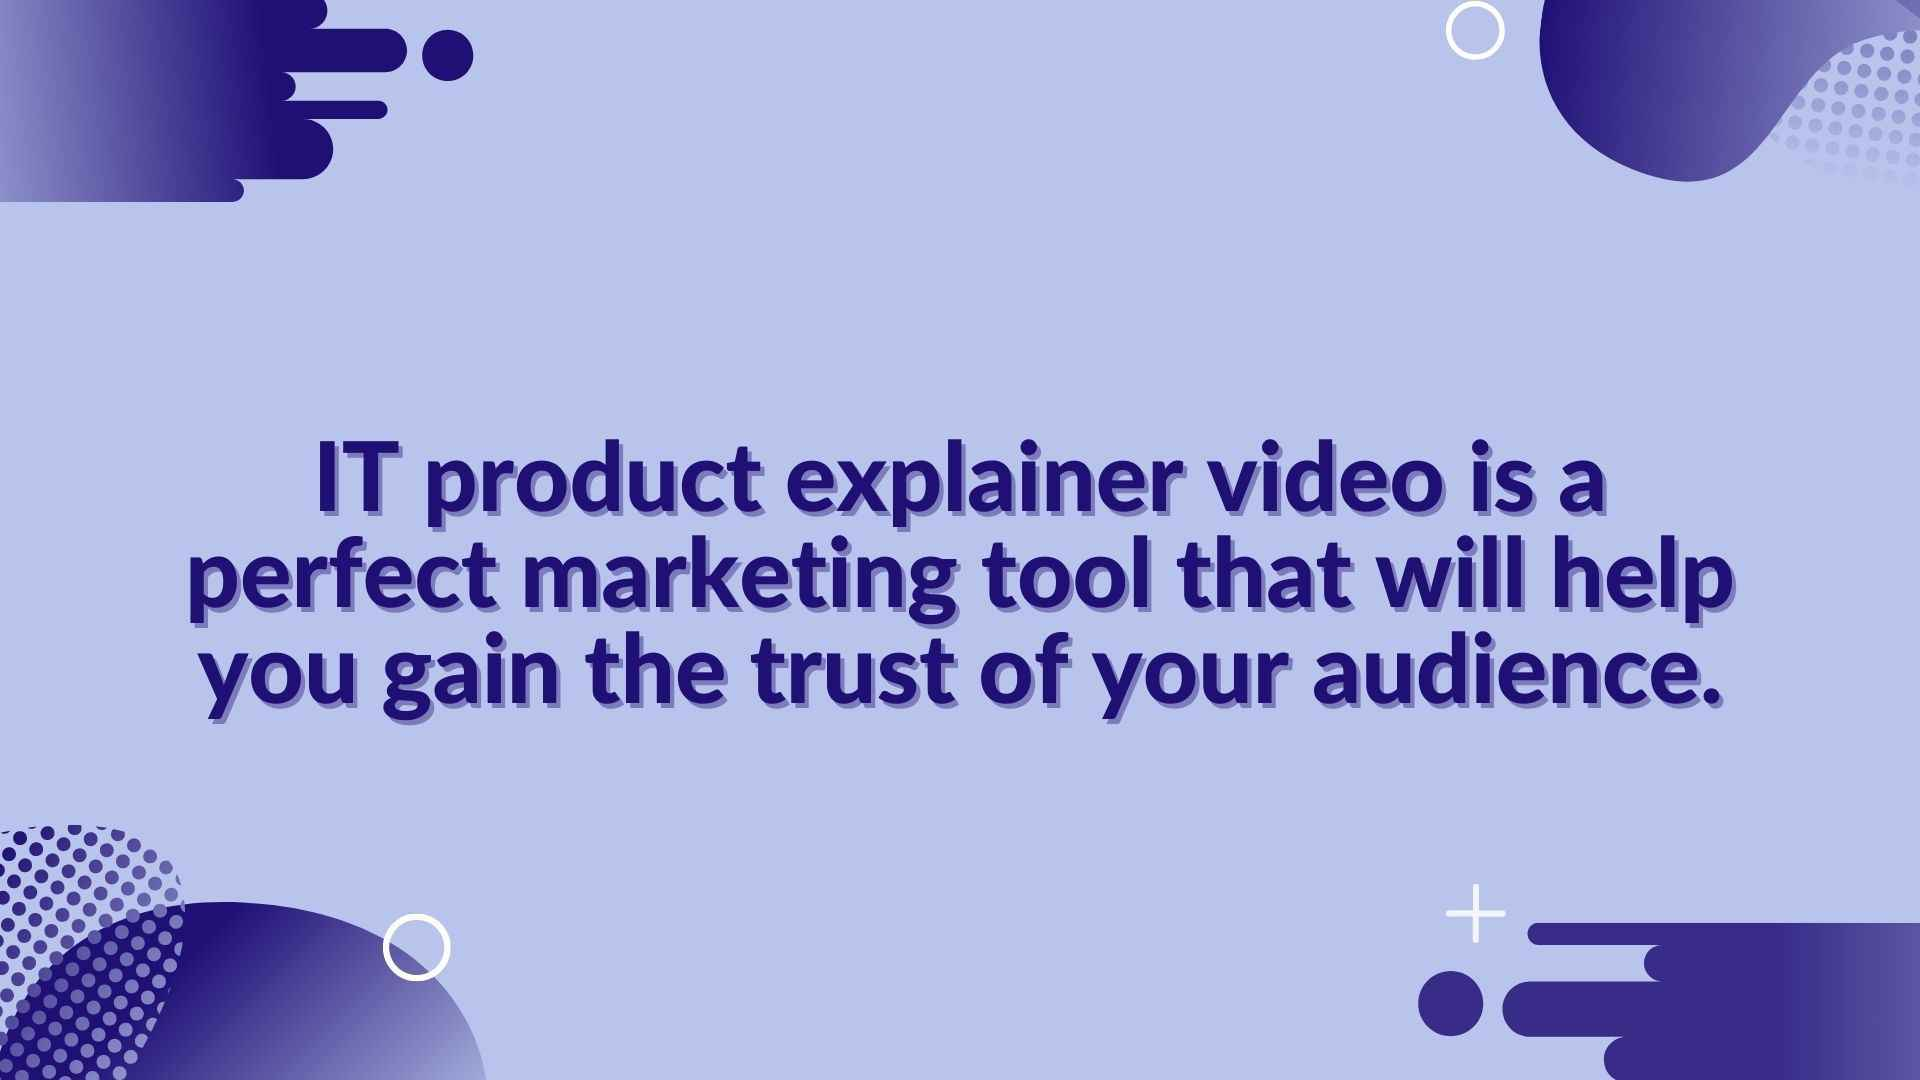 IT product explainer video is a perfect marketing tool